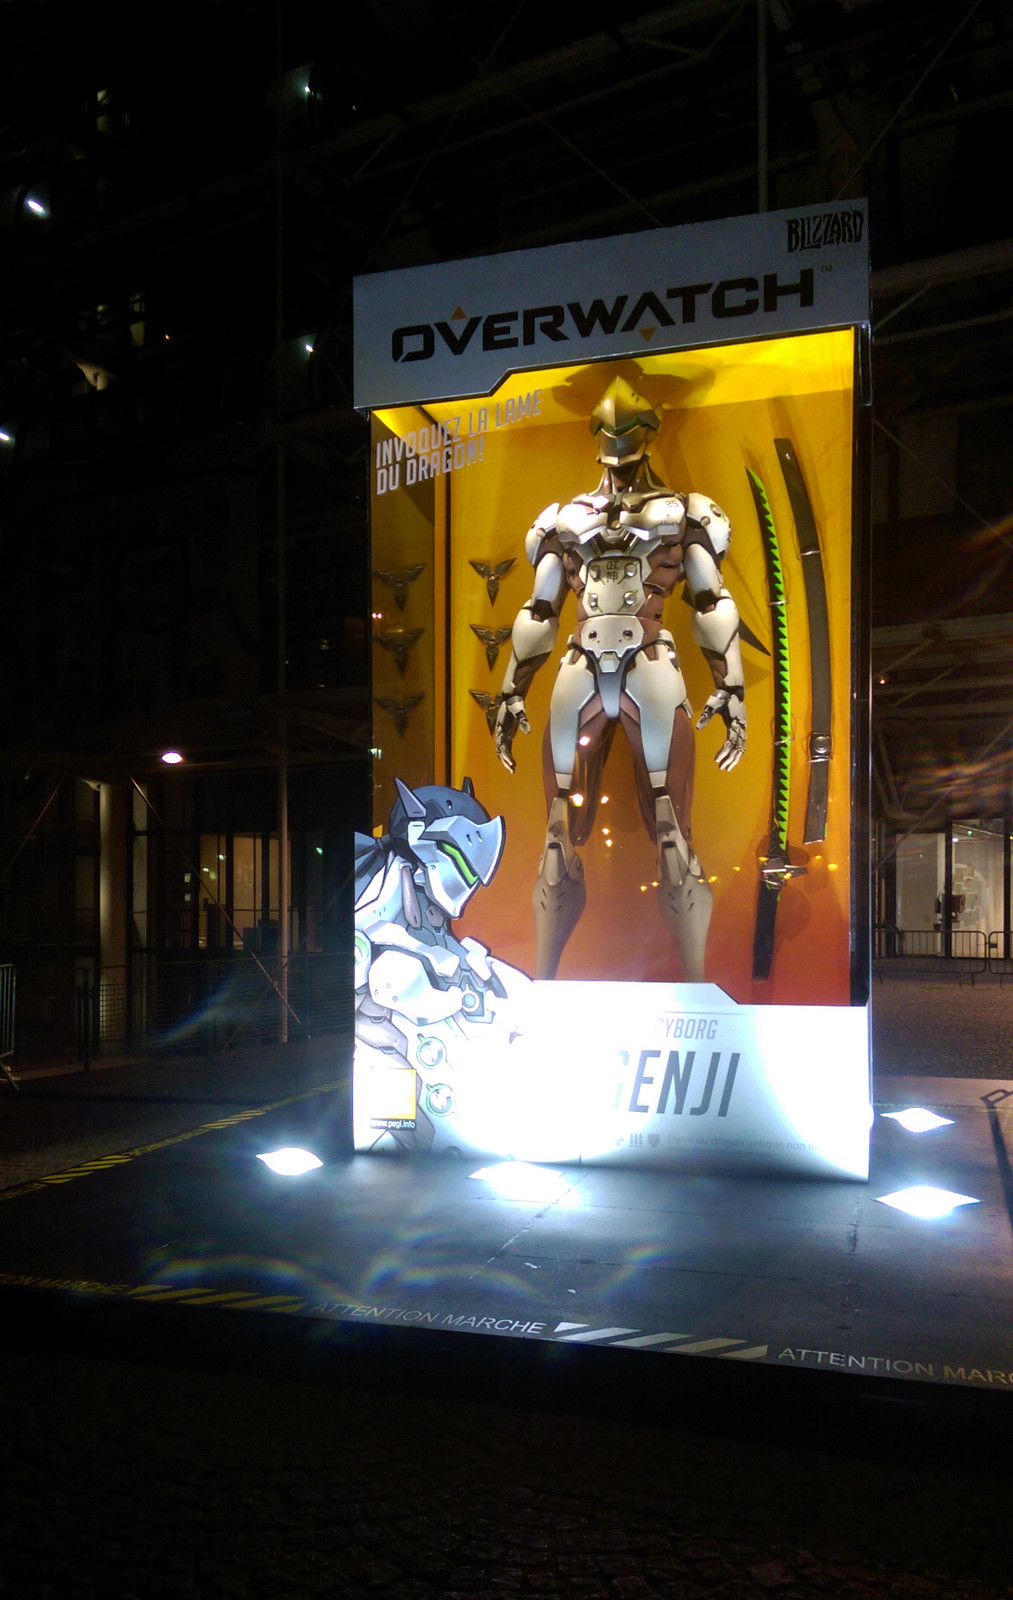 Finished installation of Genji in Paris